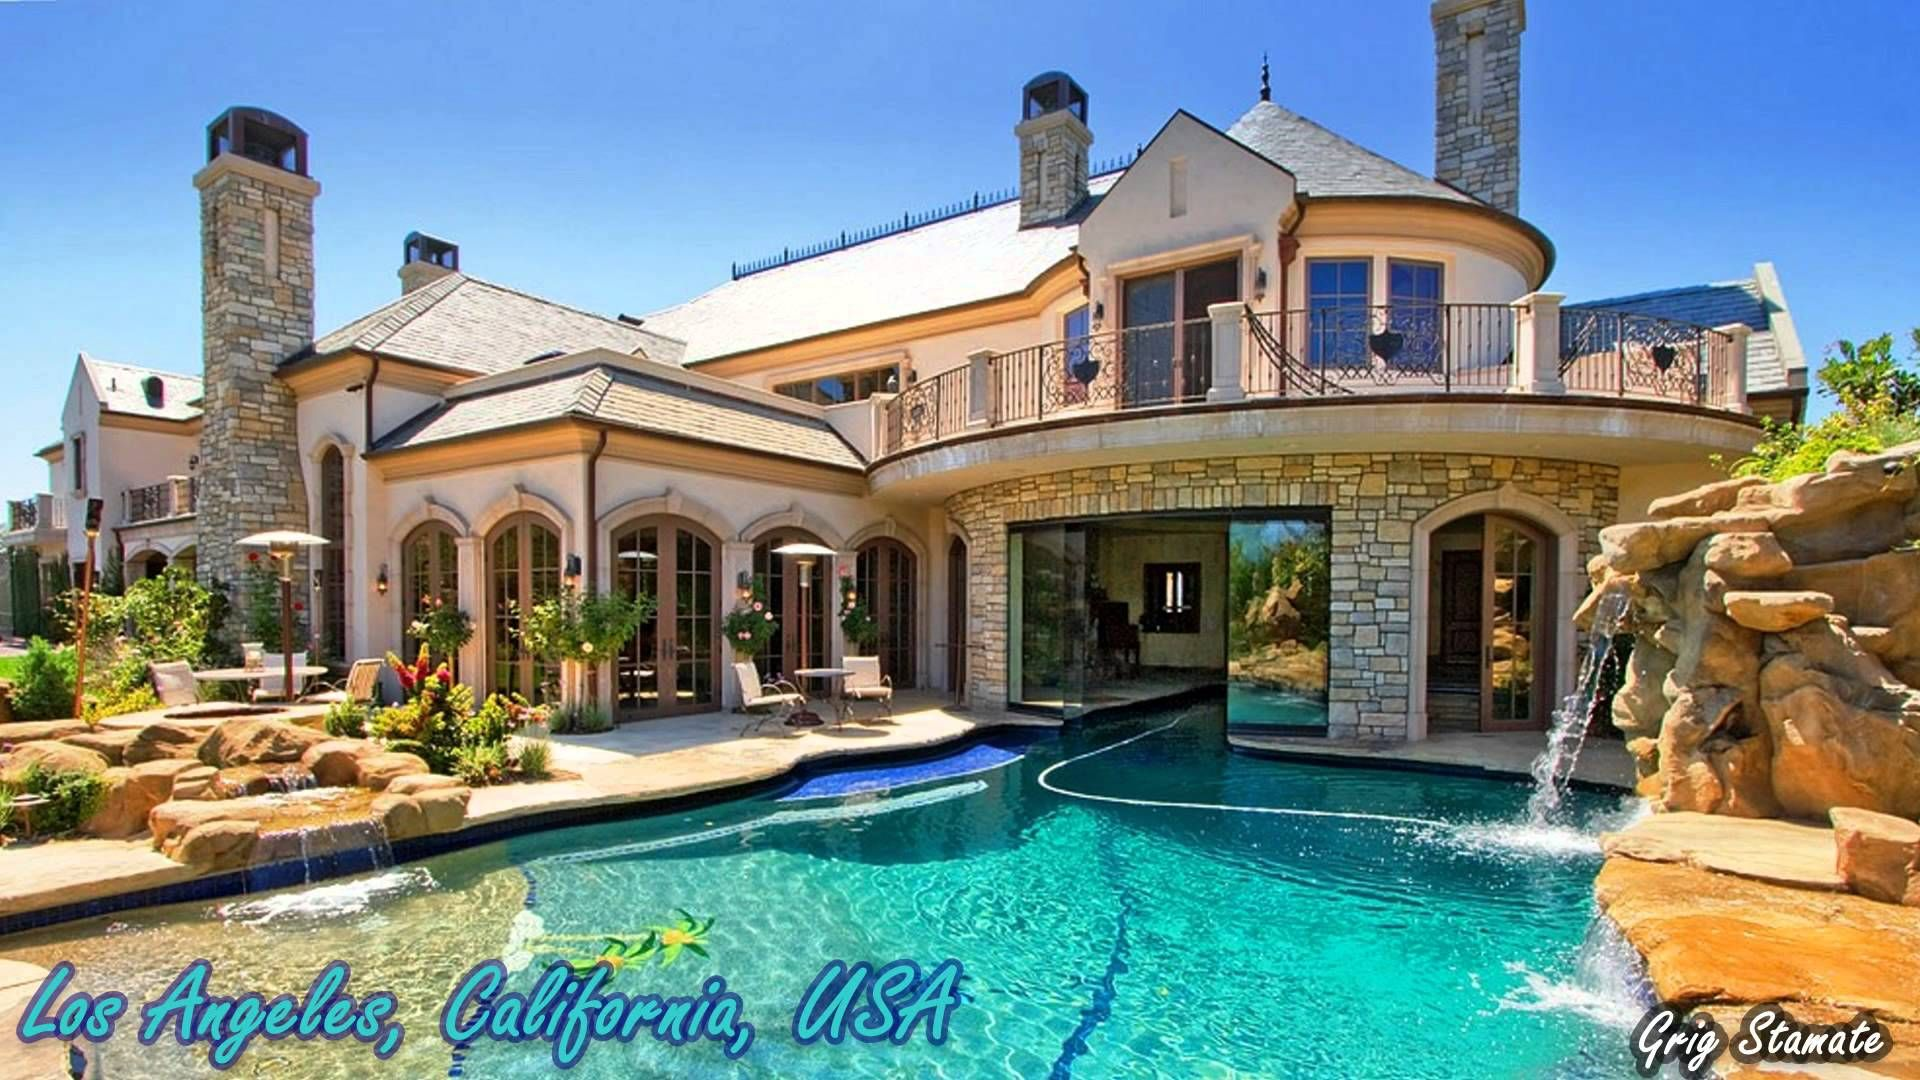 World 39 s most beautiful homes some of the most beautiful for Pictures of nice mansions